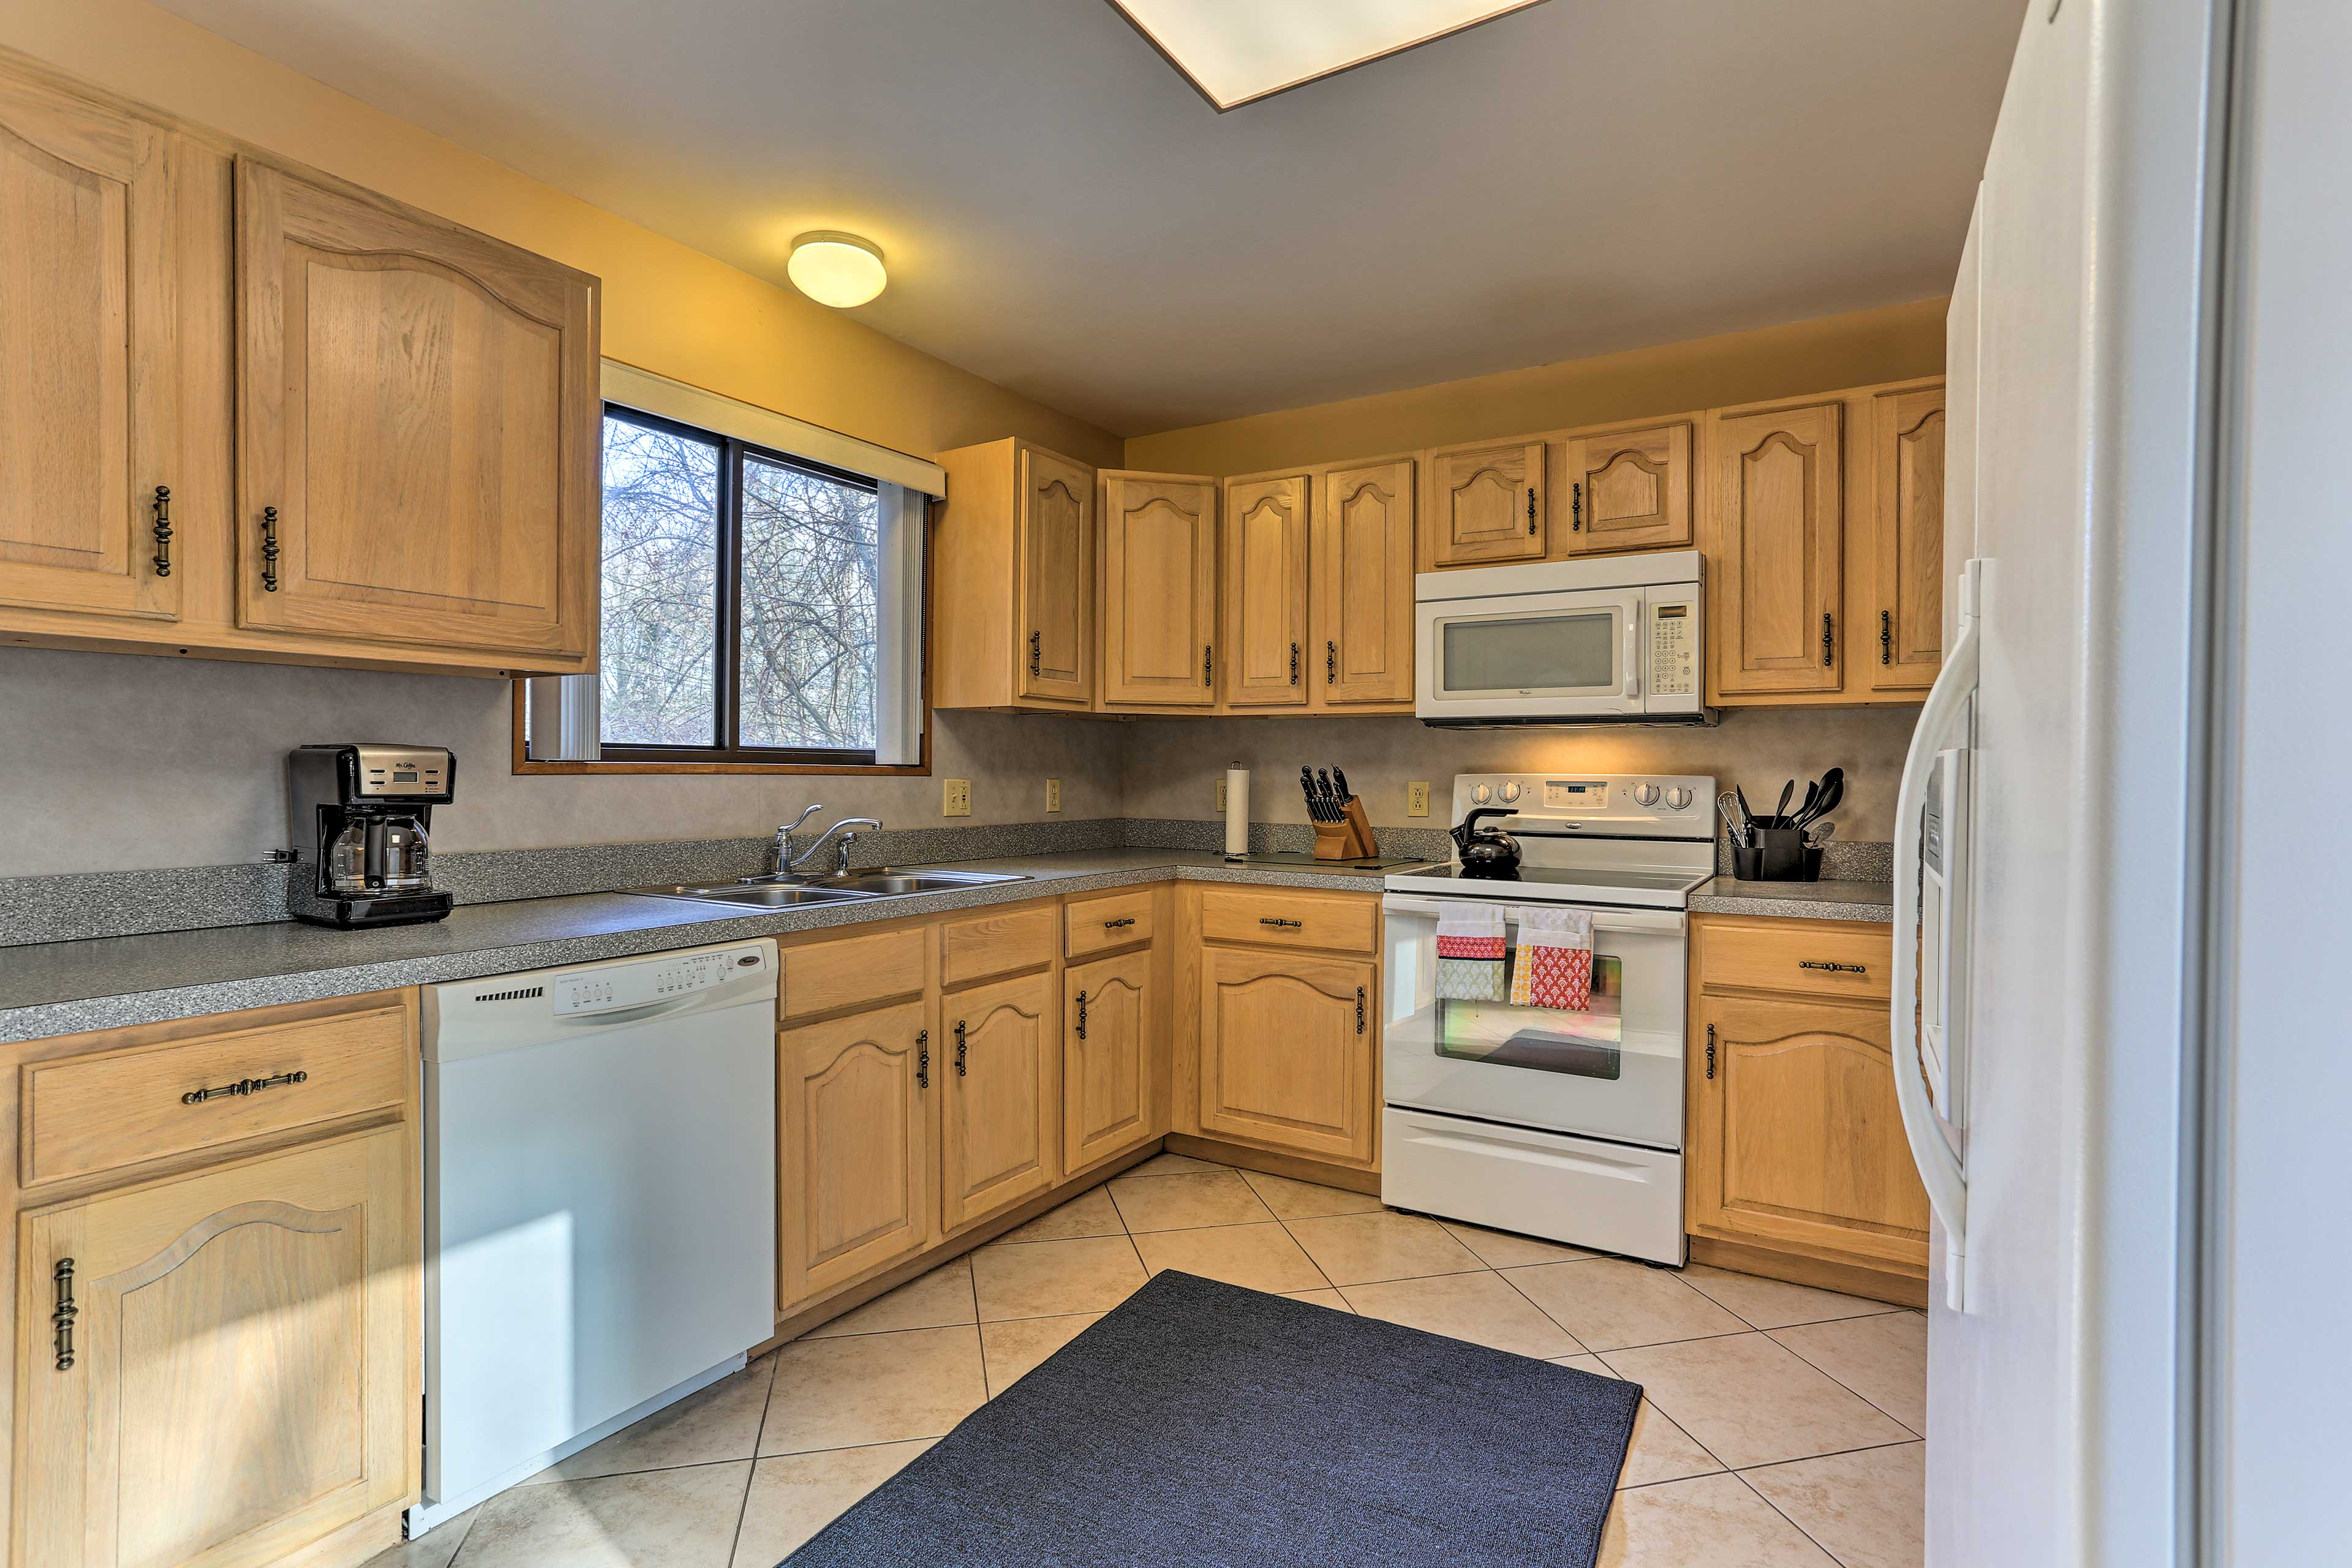 You'll enjoy cooking up your favorite meals in the fully equipped kitchen.